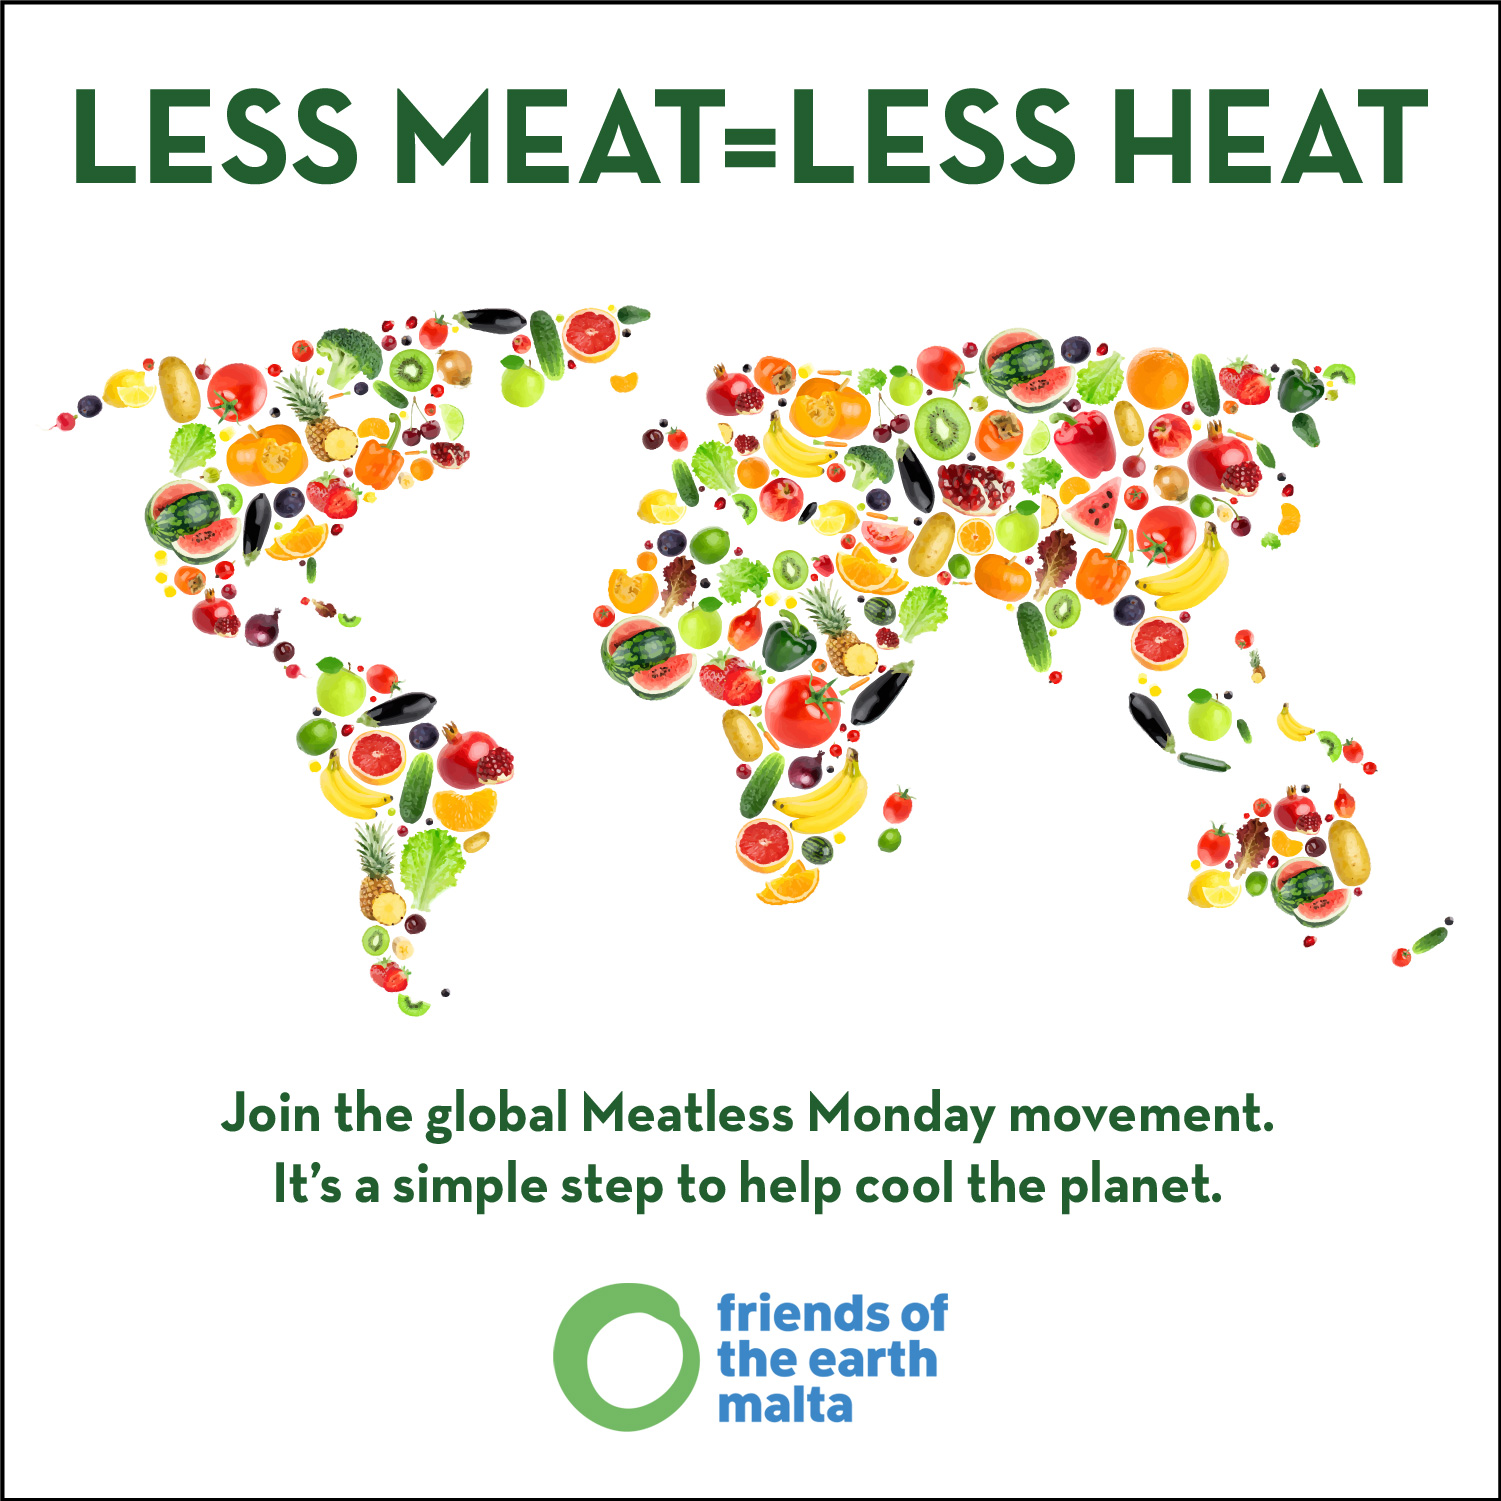 Less Meat - Less Heat